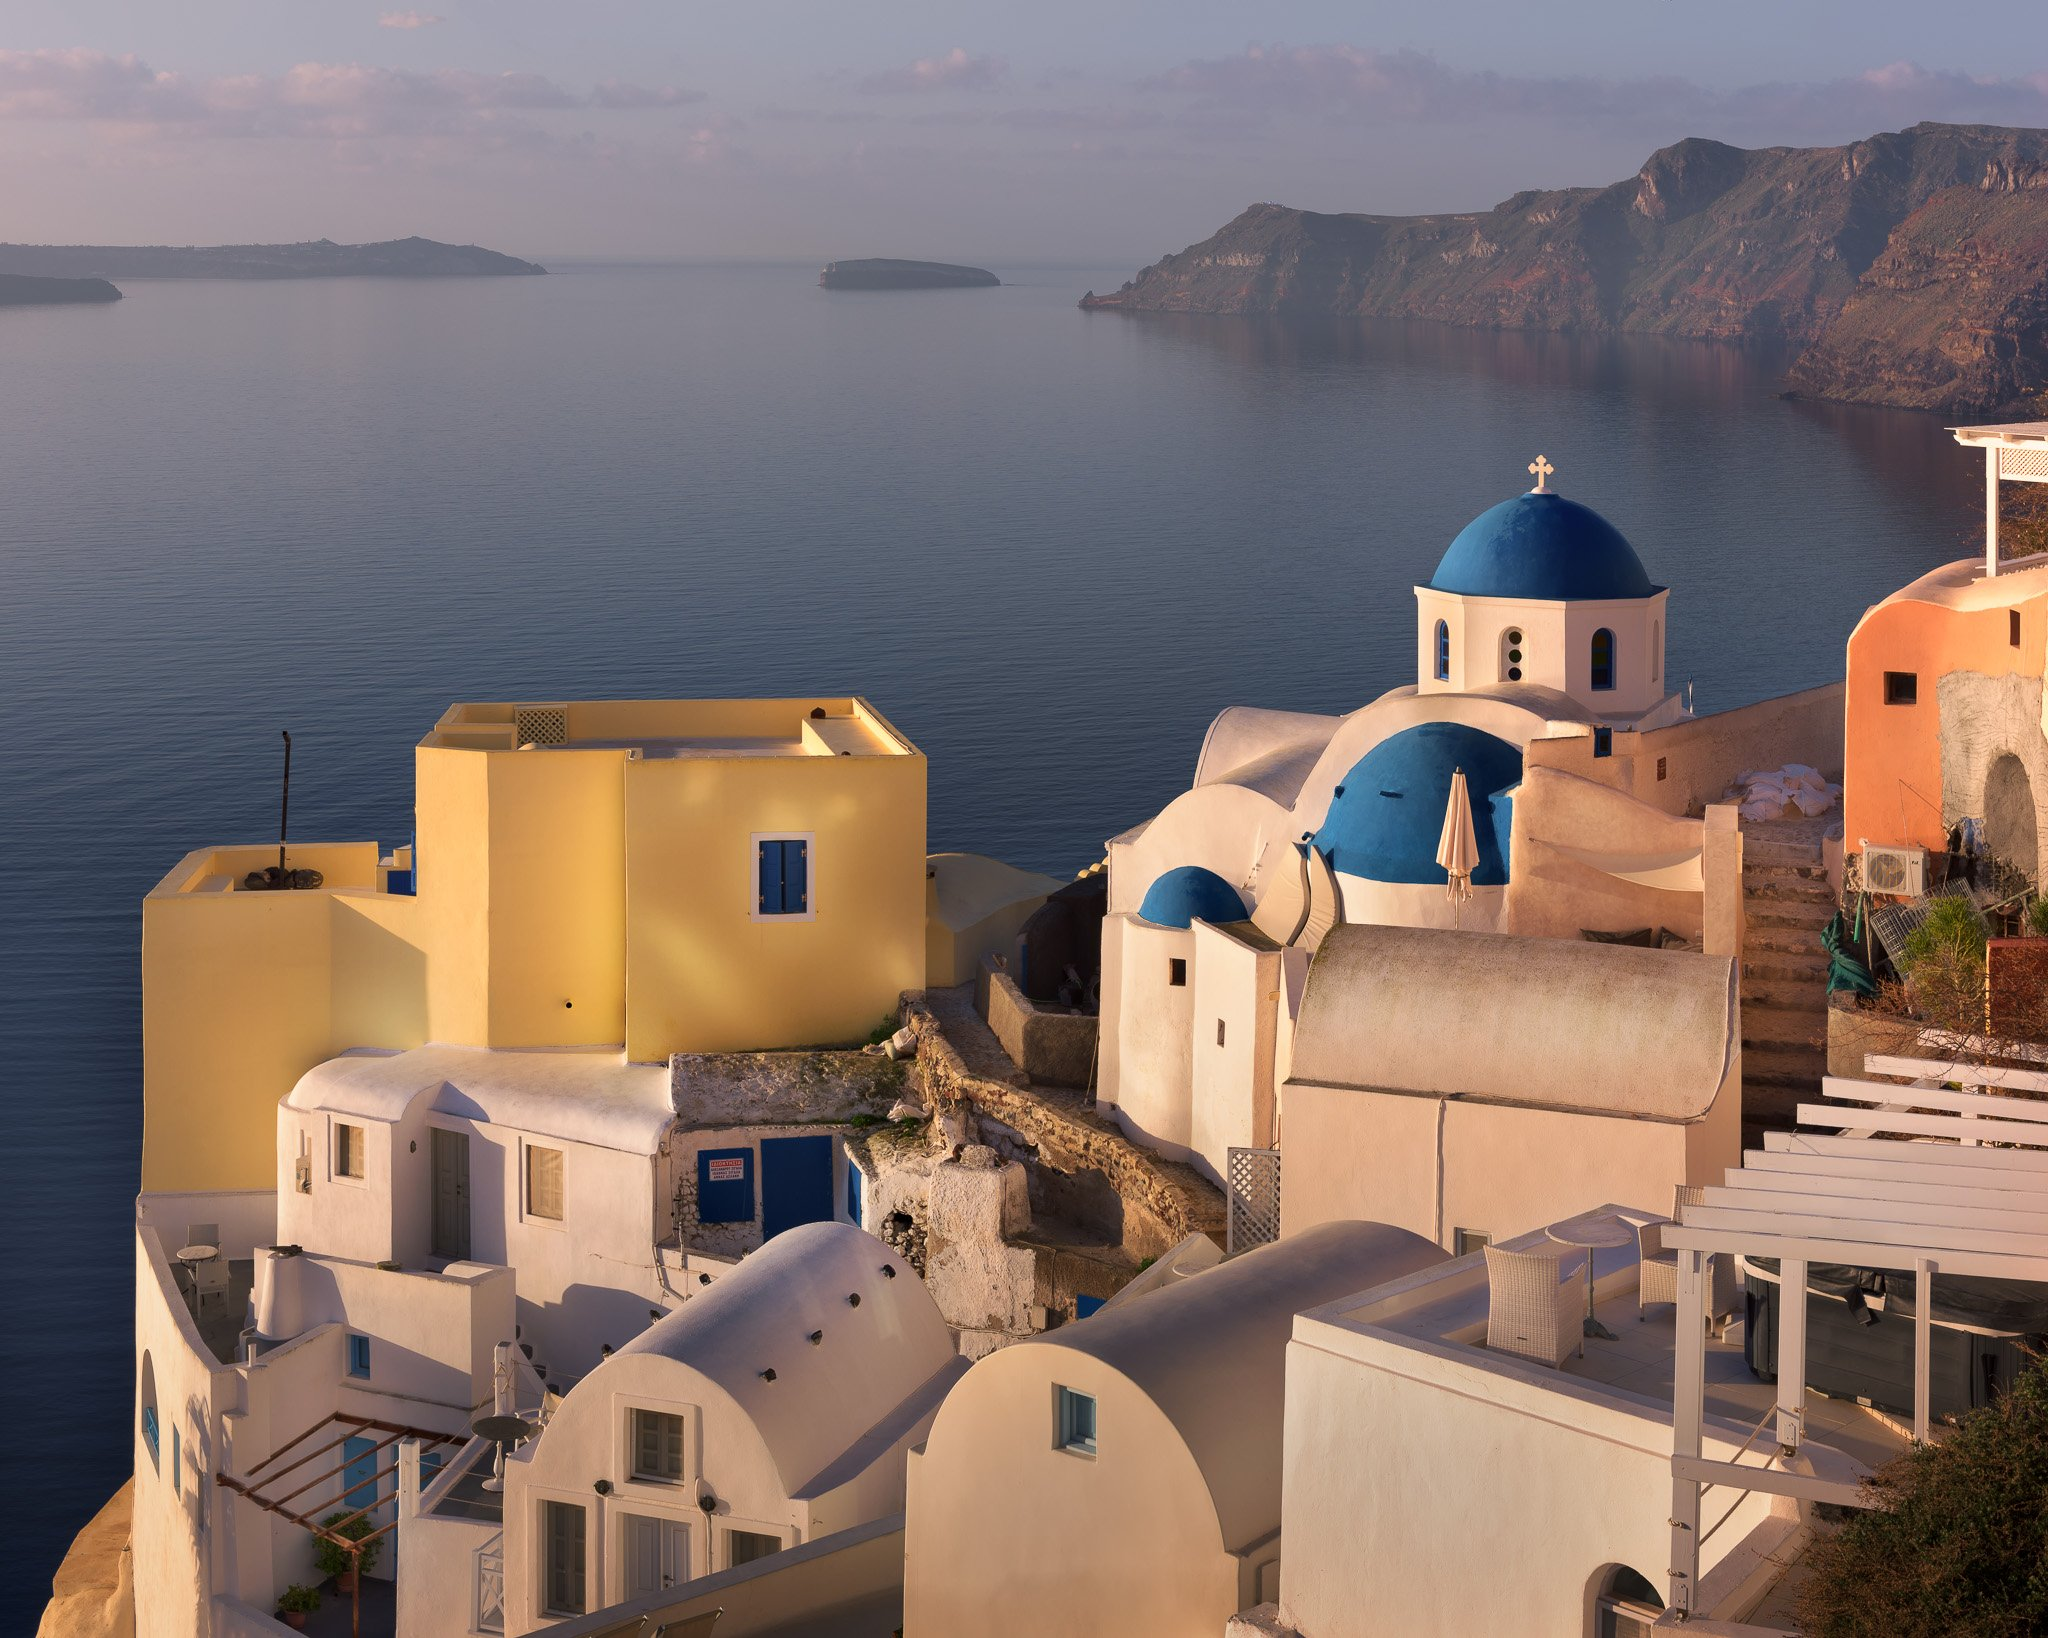 aegean, architecture, bell, blue, building, caldera, chapel, christian, church, city, cityscape, cross, cupola, cyclades, dome, europe, european, greece, greek, history, house, iconic, island, landmark, landscape, mediterranean, morning, nature, oia, oran, anshar